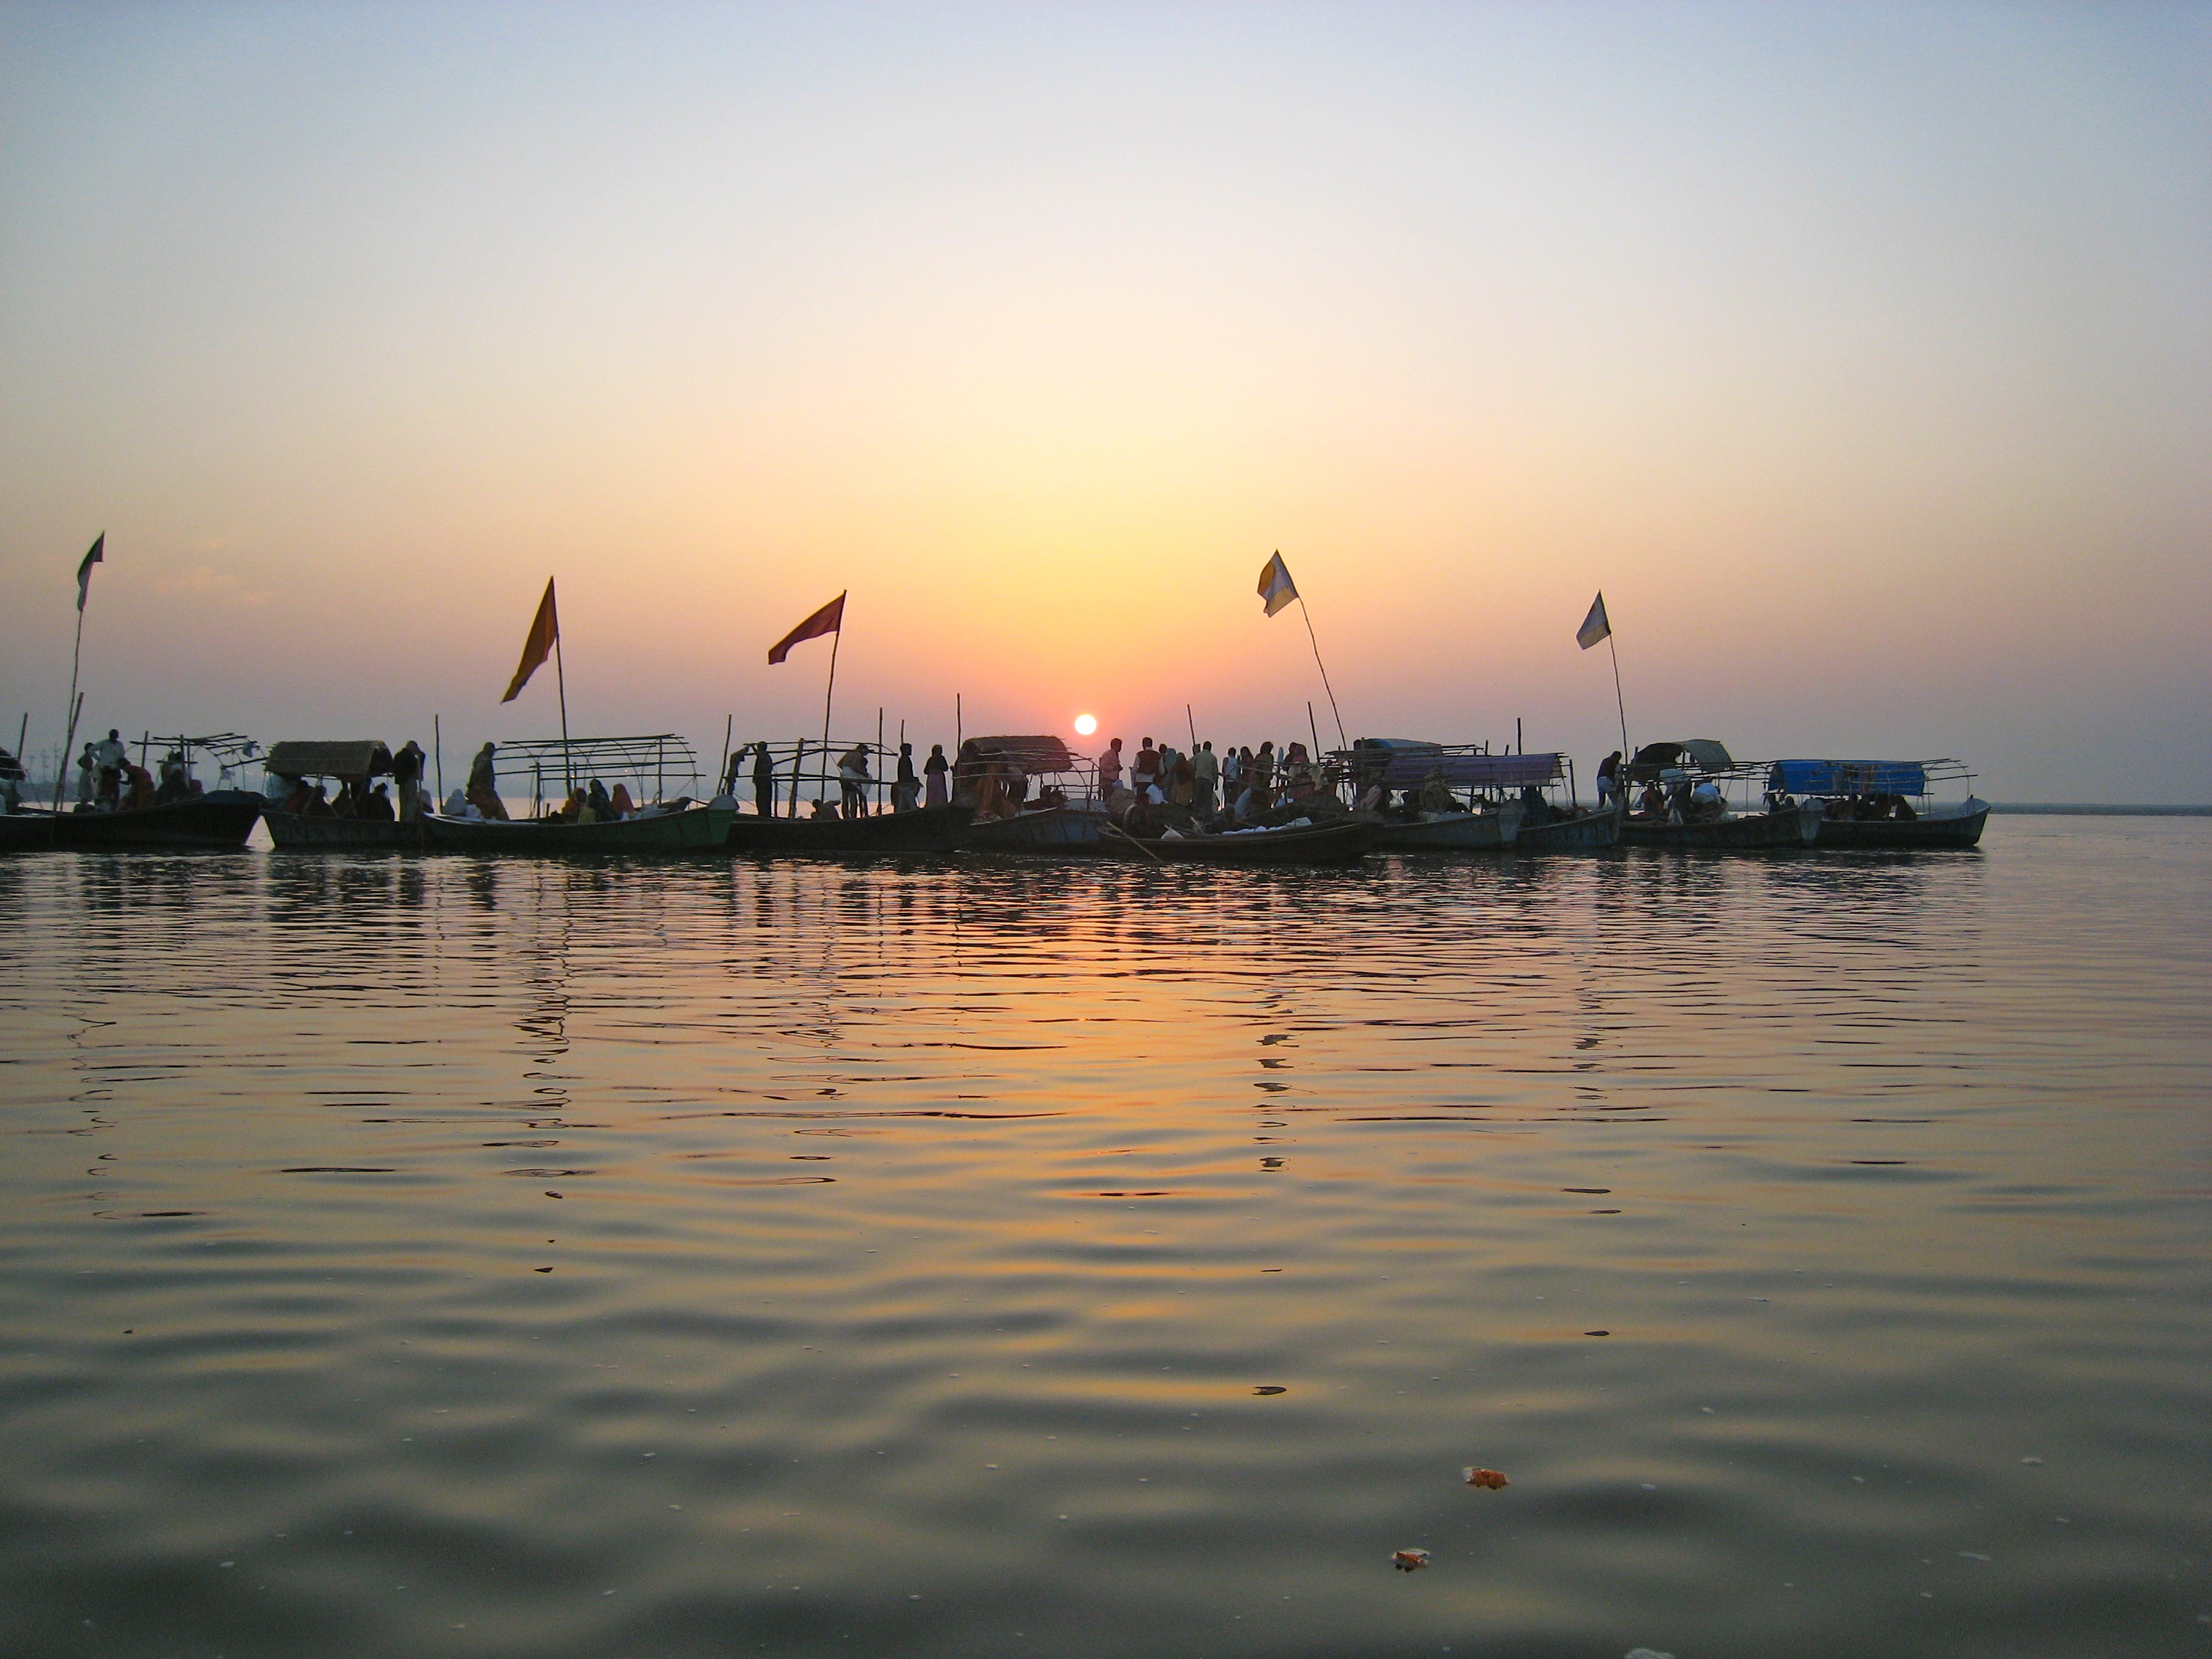 Ganga and Yamuna